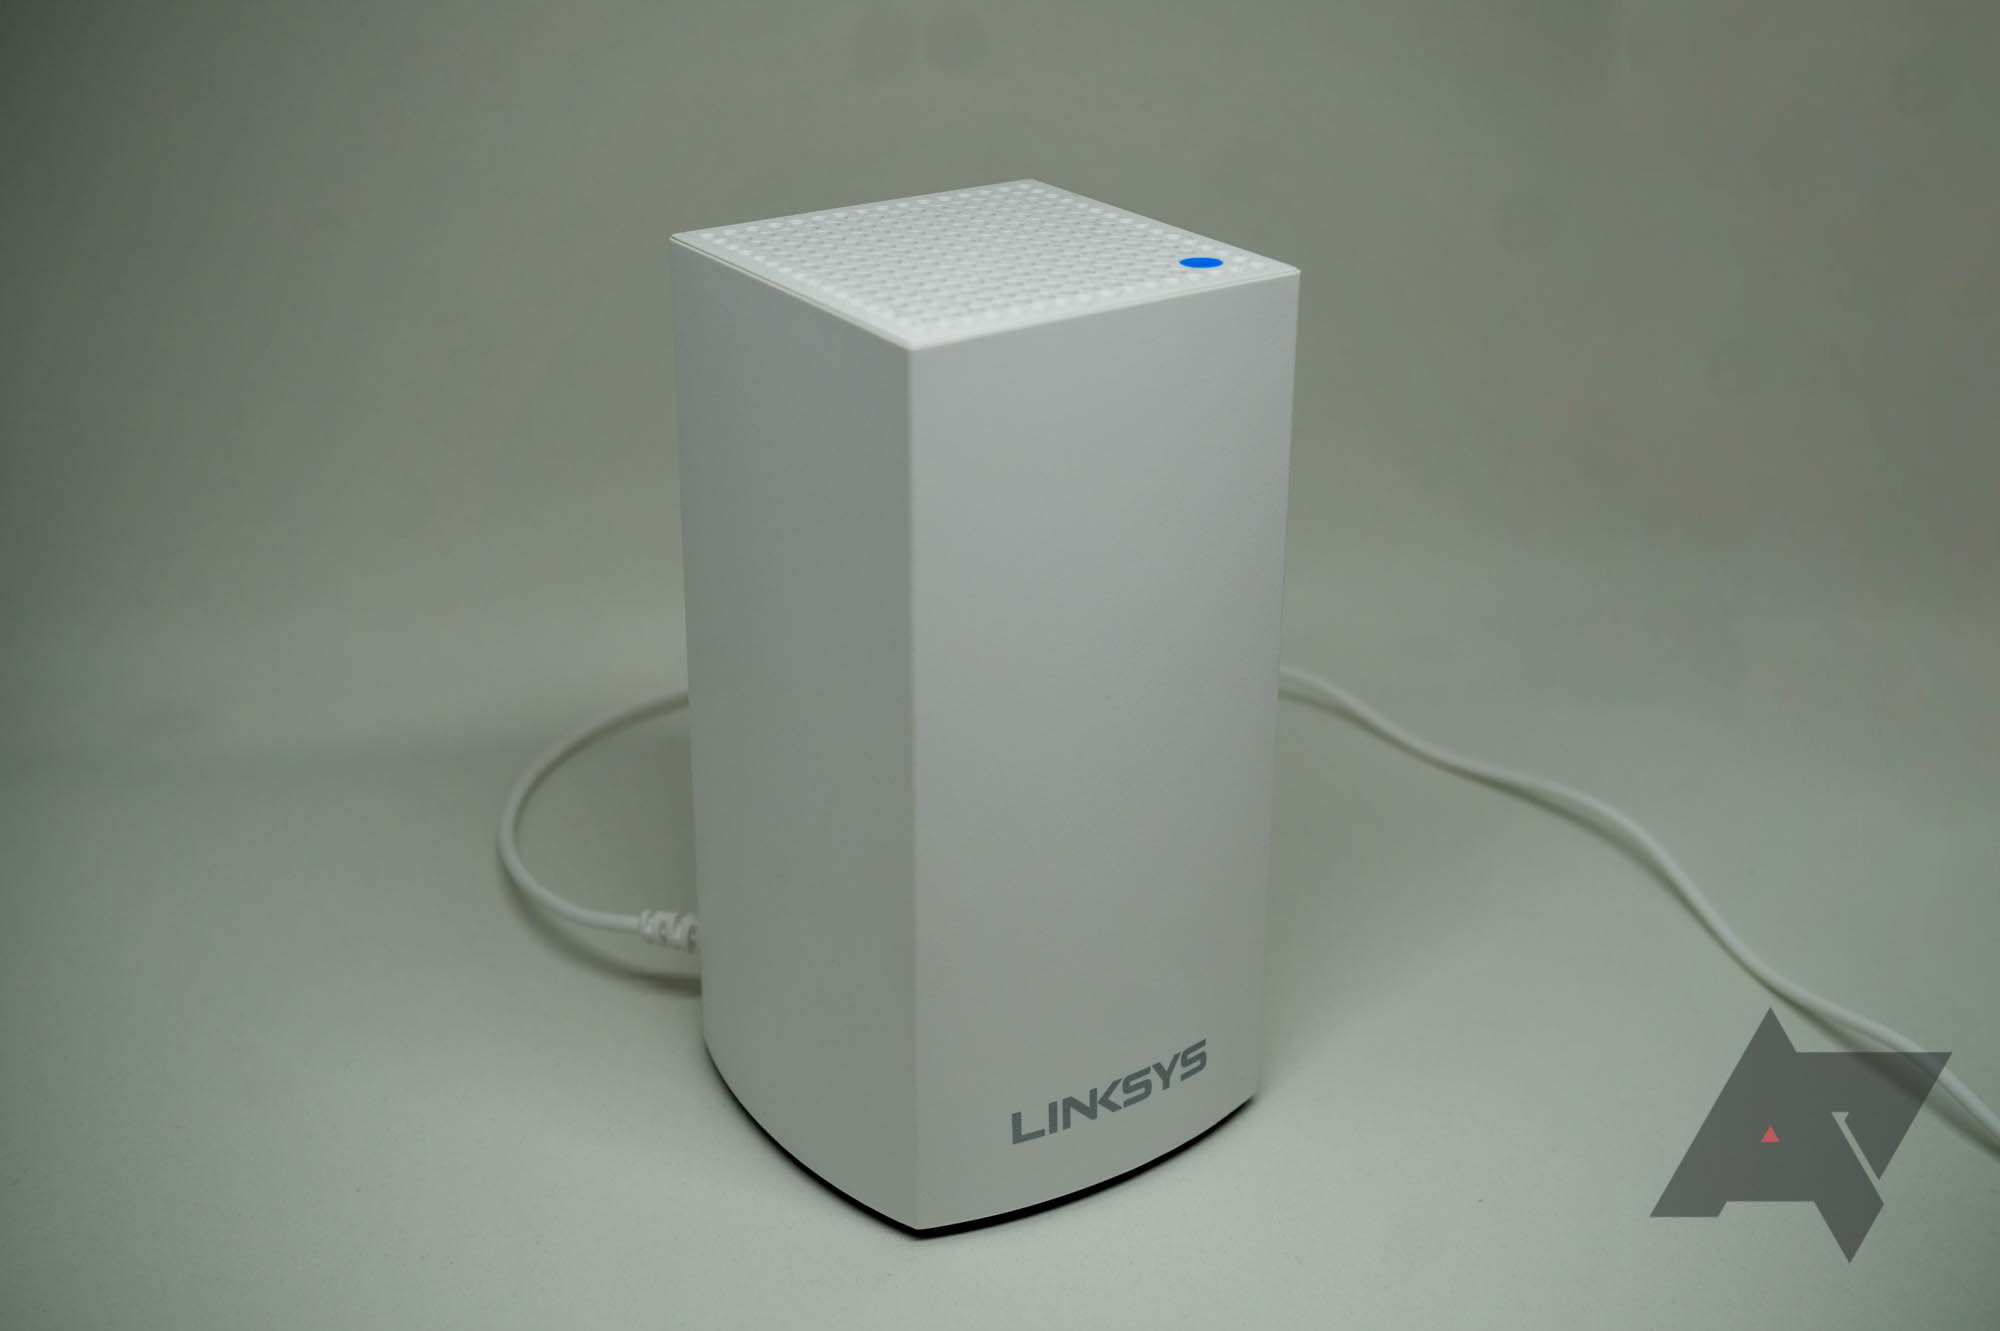 Linksys Velop Tri-Band Whole Home Wi-Fi System 4-pack is $350 ($150